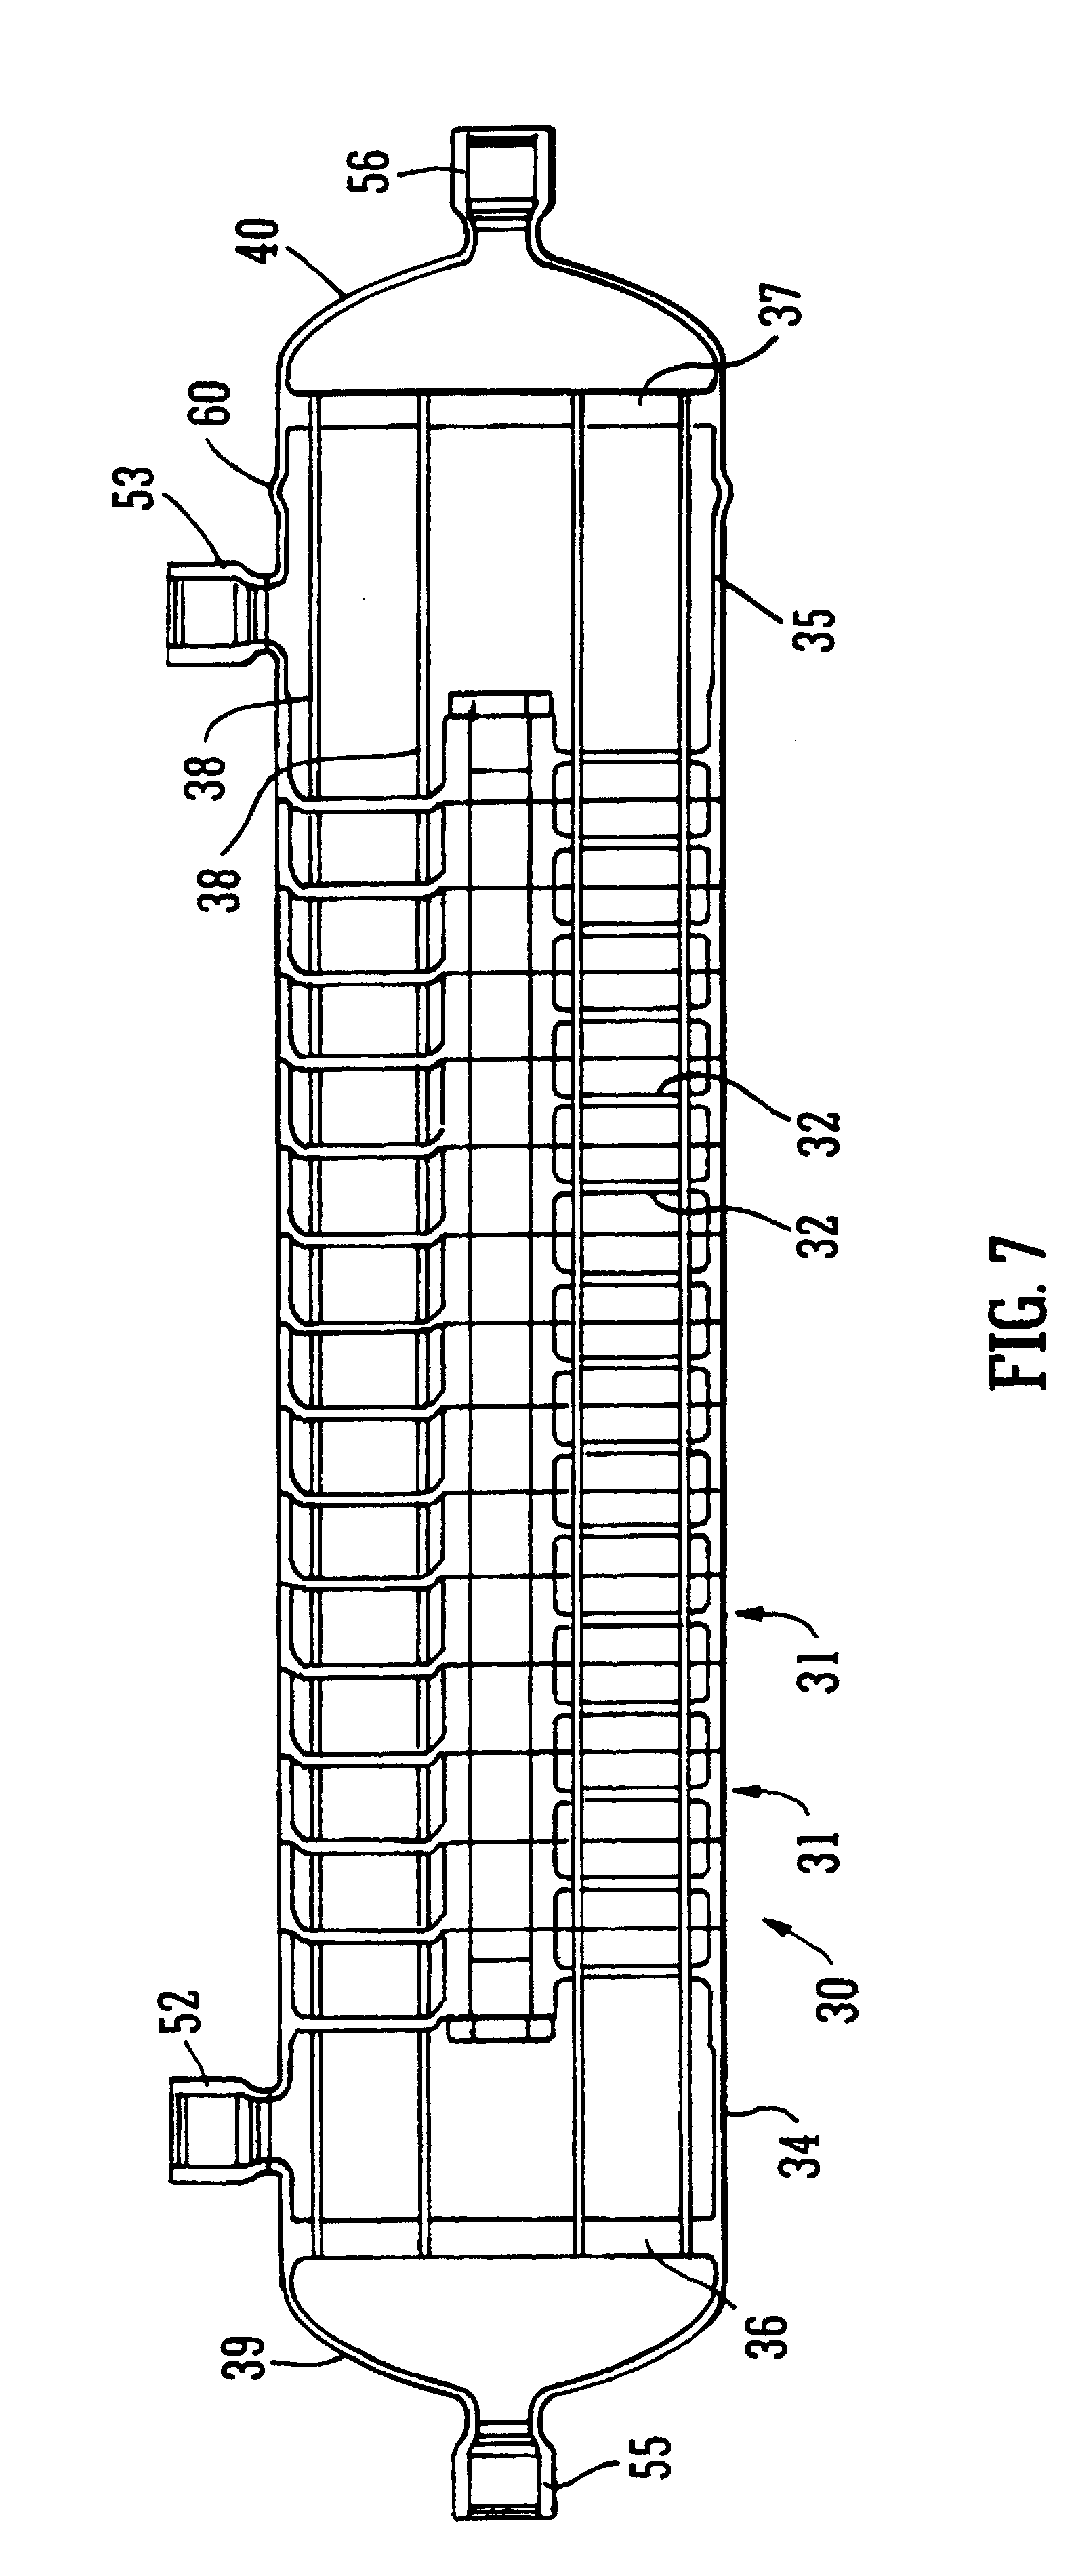 Axial Flow Heat Exchanger : Patent us heat exchanger google patents